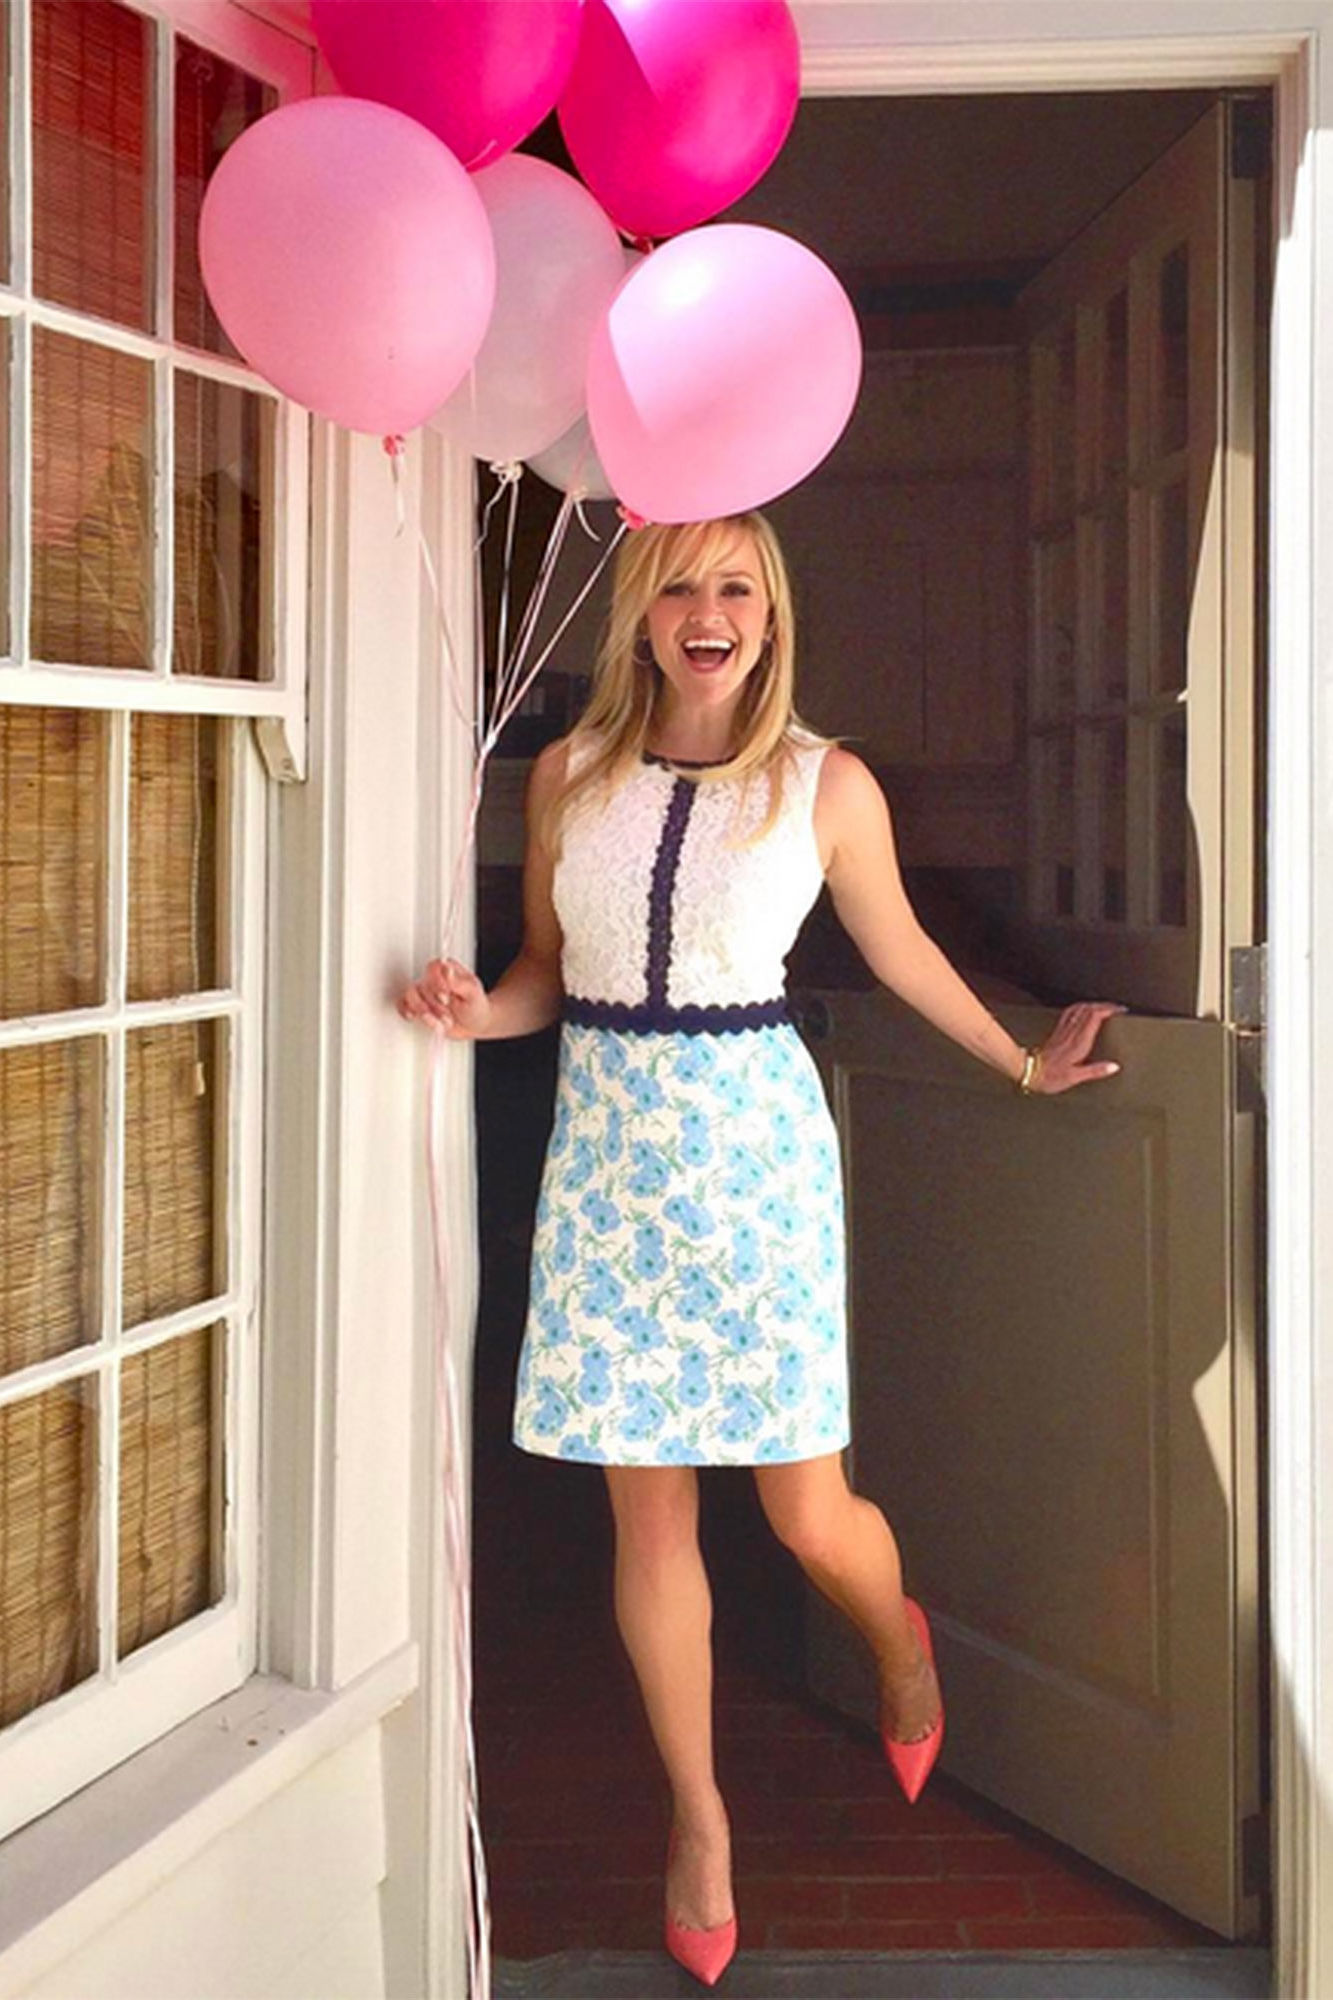 Reese Witherspoon Shares Her Two Secrets for Throwing a Great Party, 'Even If the Food Is Bad!'